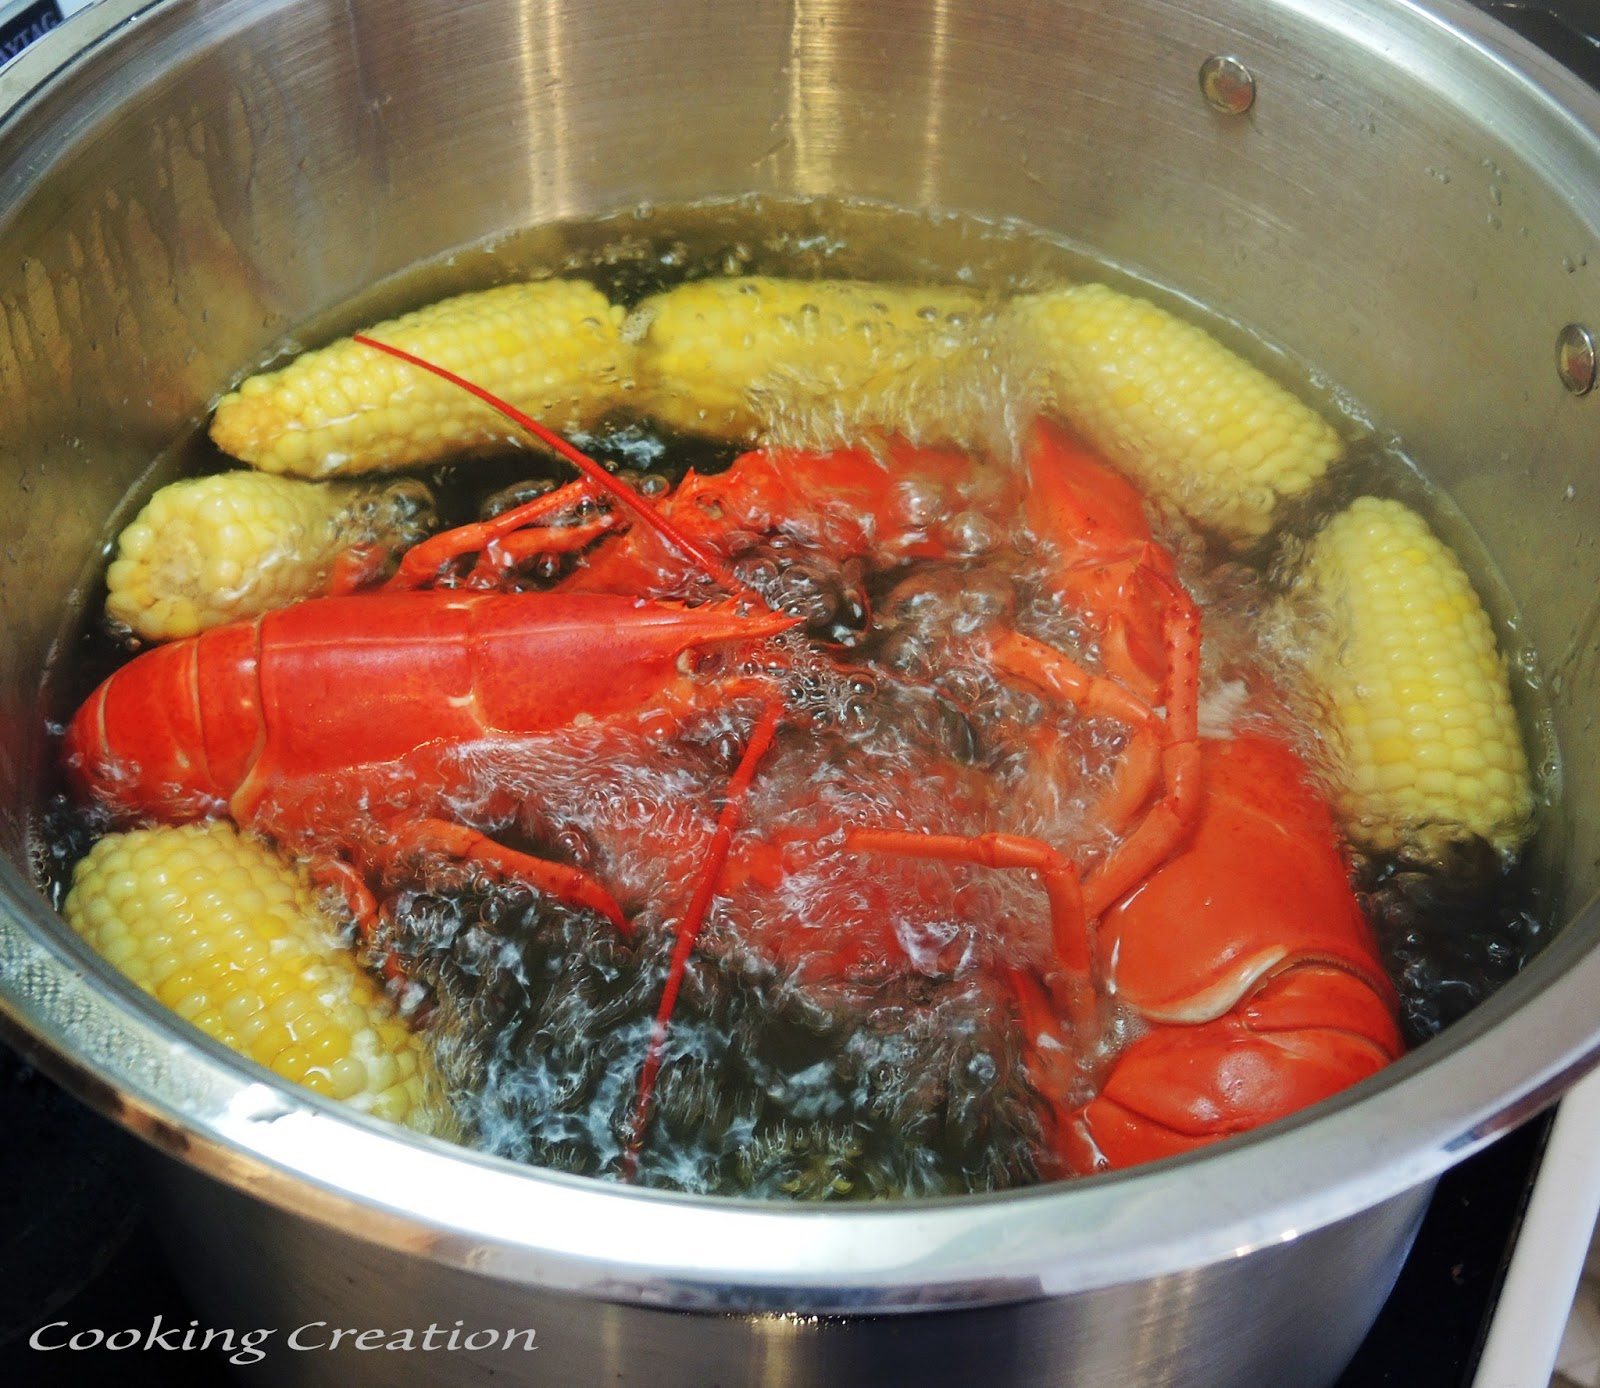 Cooking Creation: Boiled Lobster & Corn on the Cob